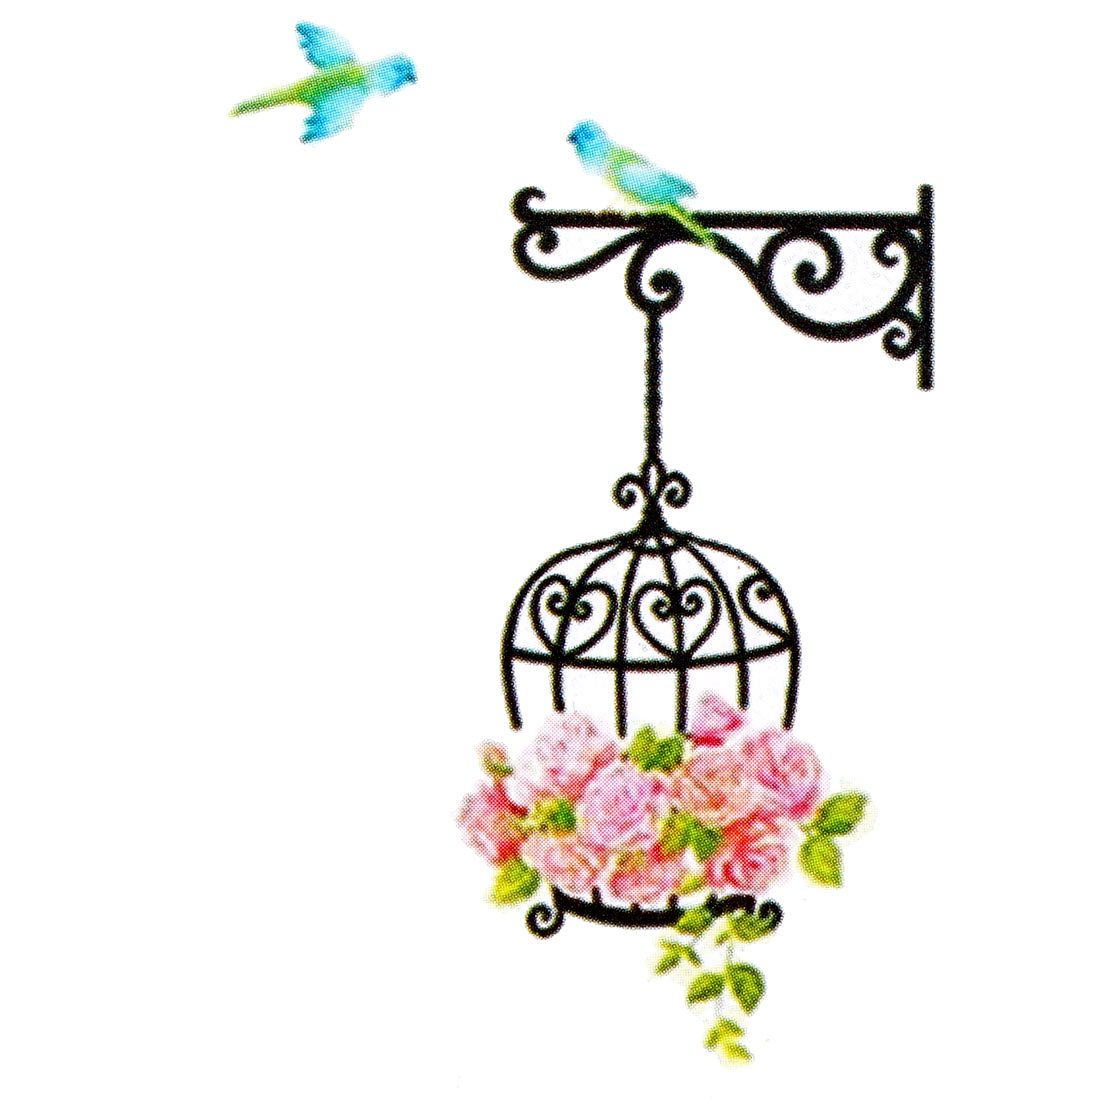 Bird Cage Rose Flower Pattern Removable Wall Sticker Decal Mural Art Decor